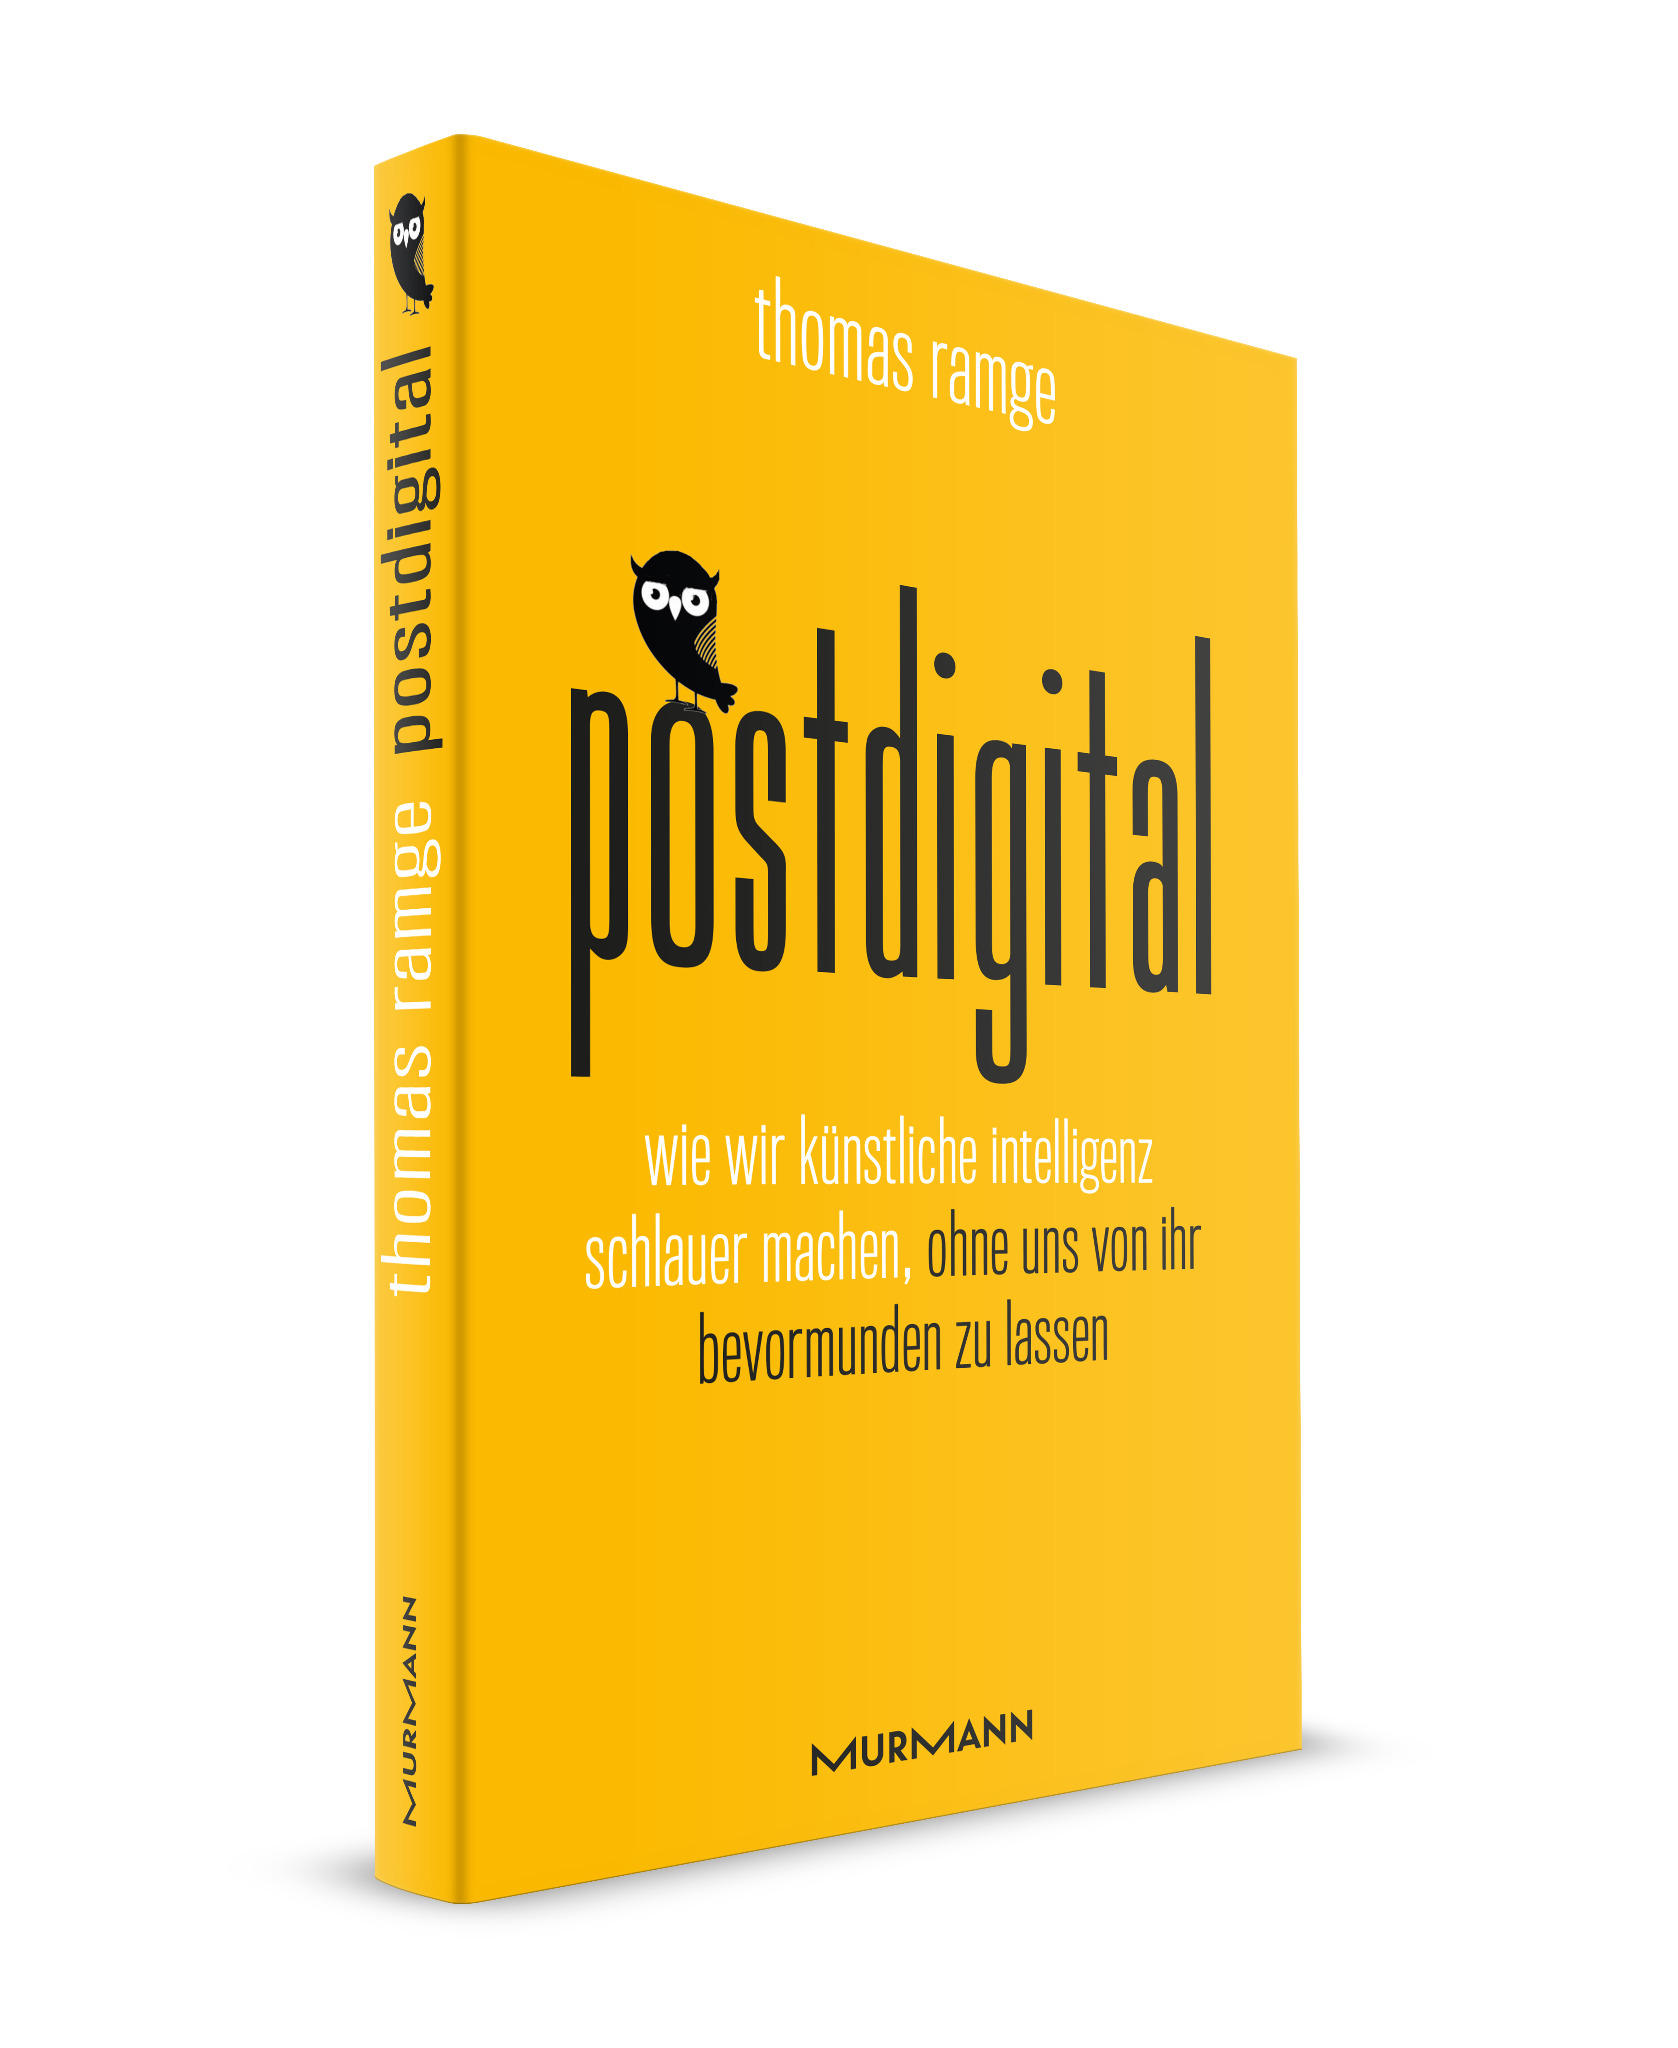 postdigital / Thomas Ramge